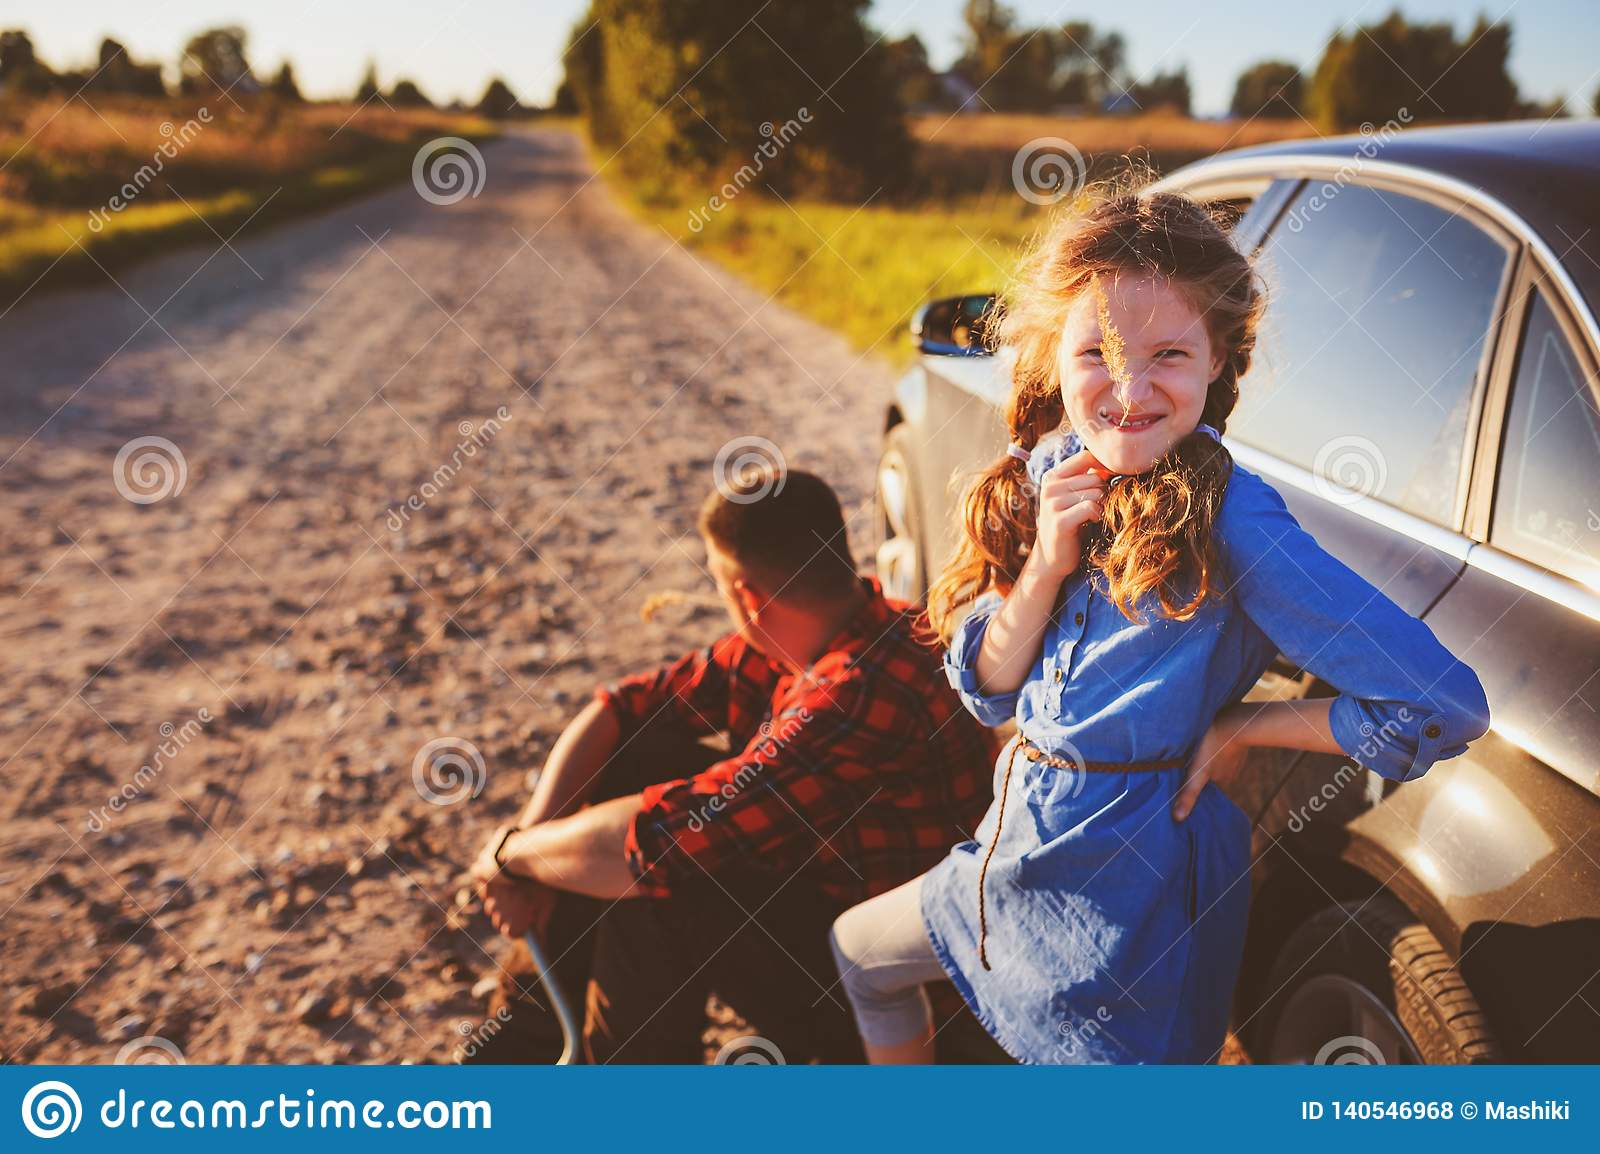 Father and daughter changing broken tire during summer rural road trip.